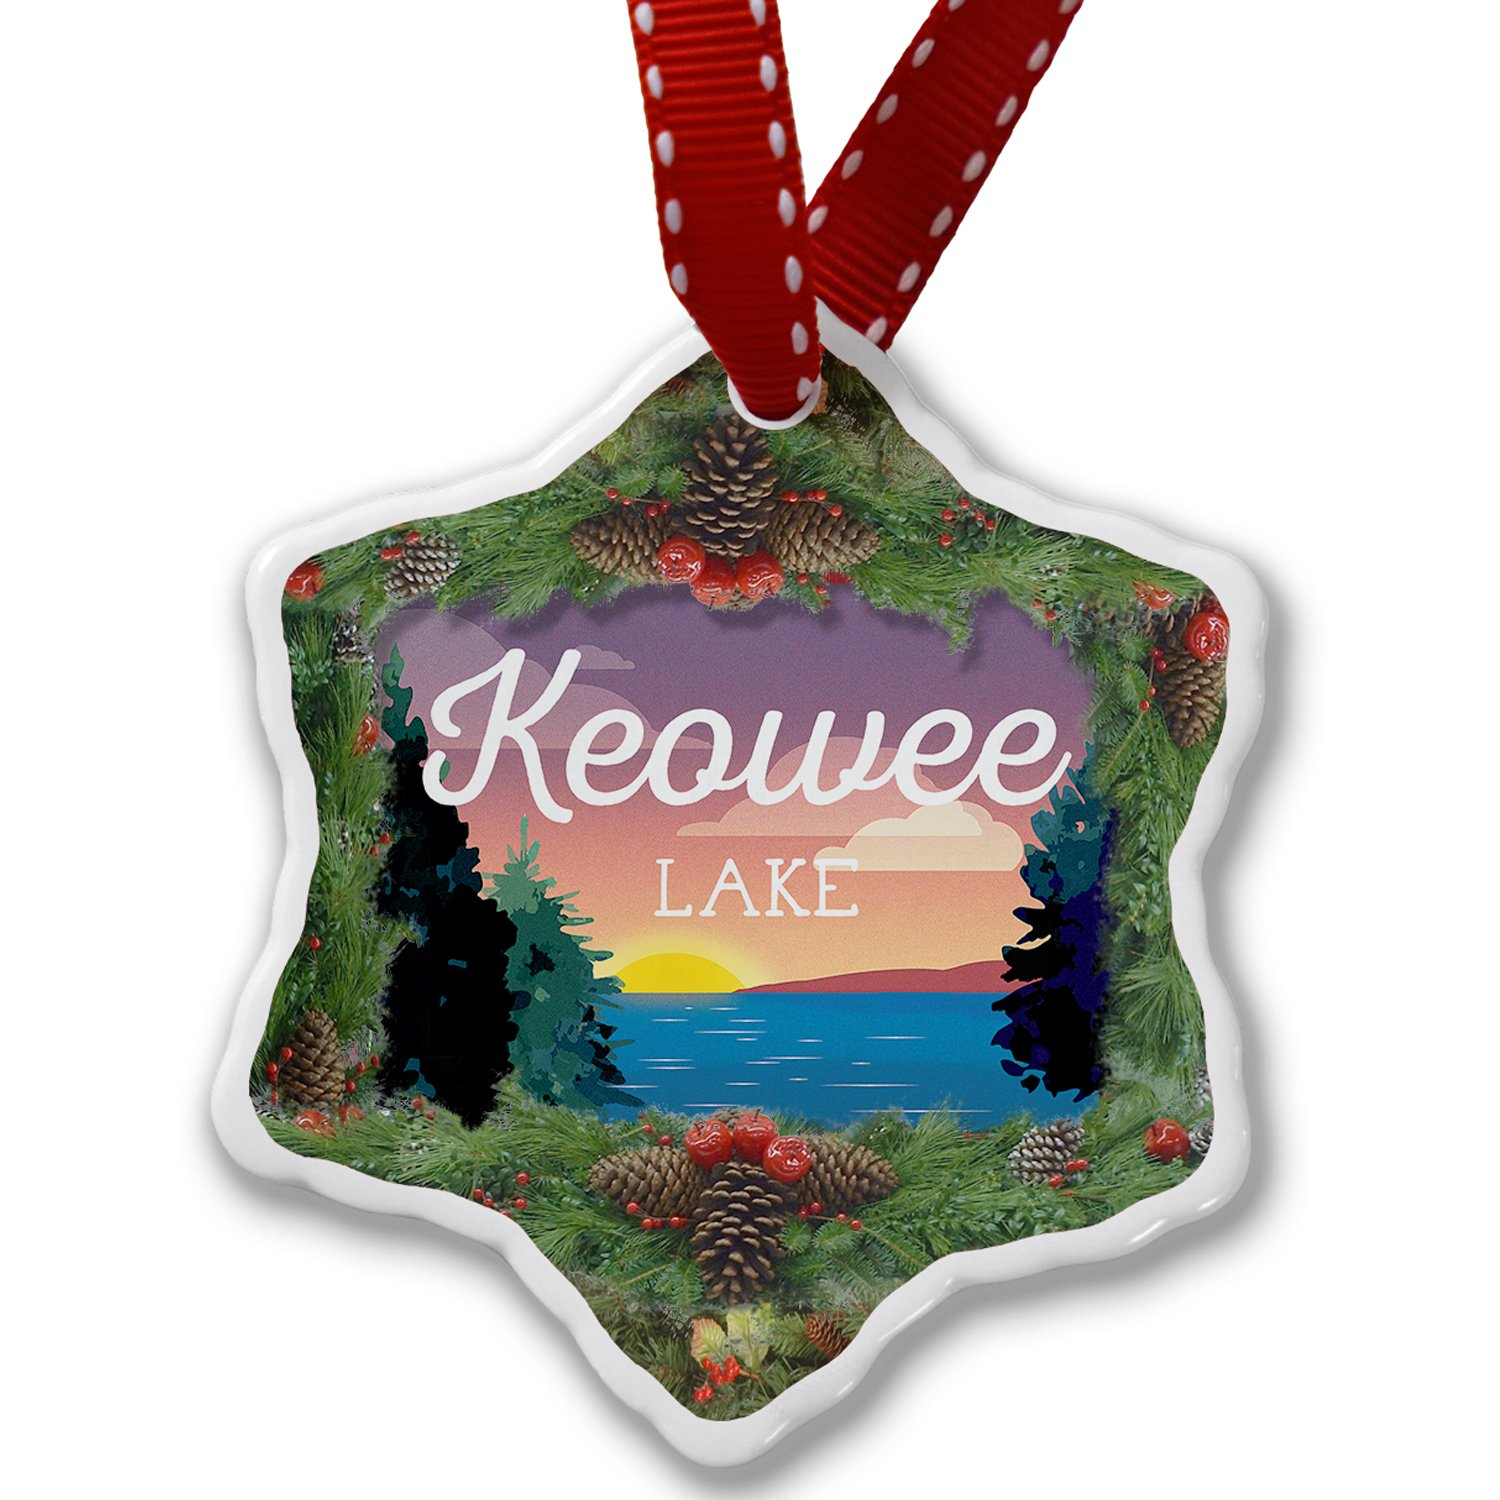 Christmas Ornament Lake retro design Lake Keowee - Neonblond